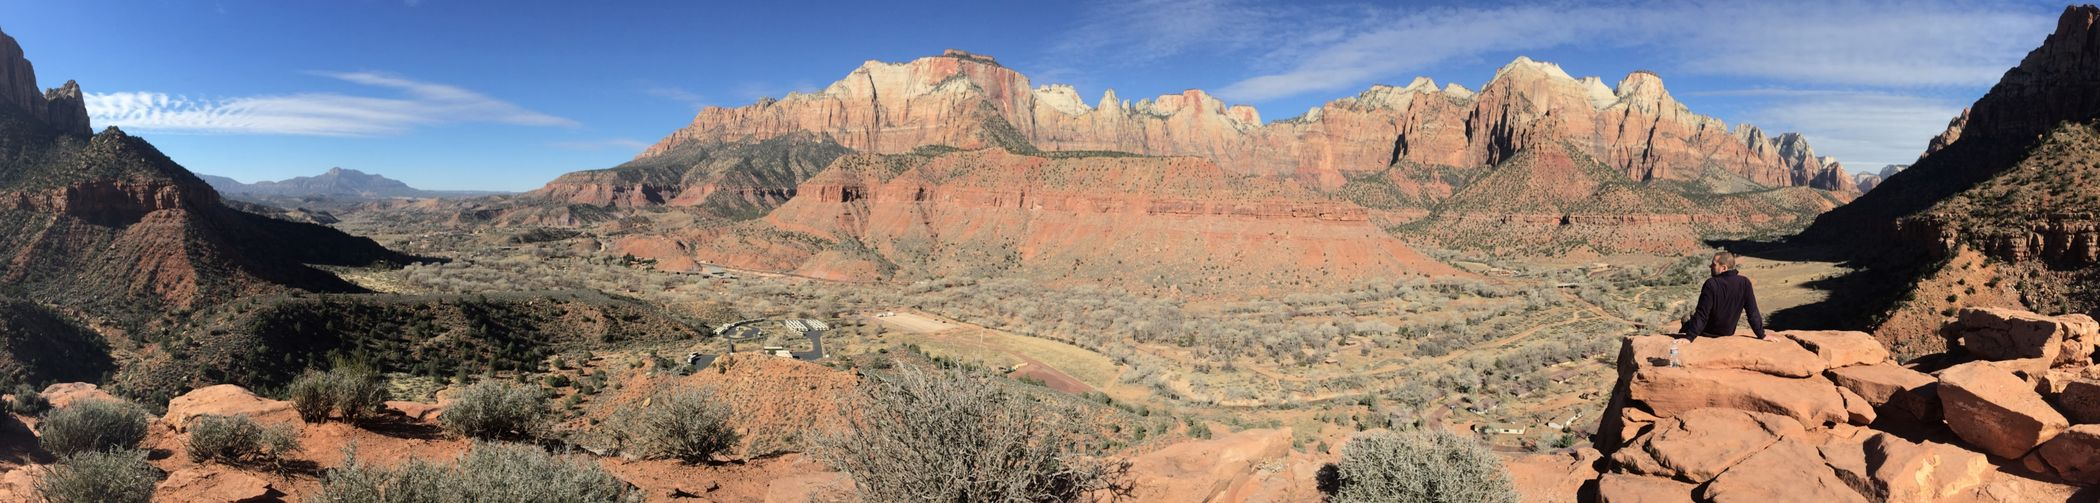 Zion National